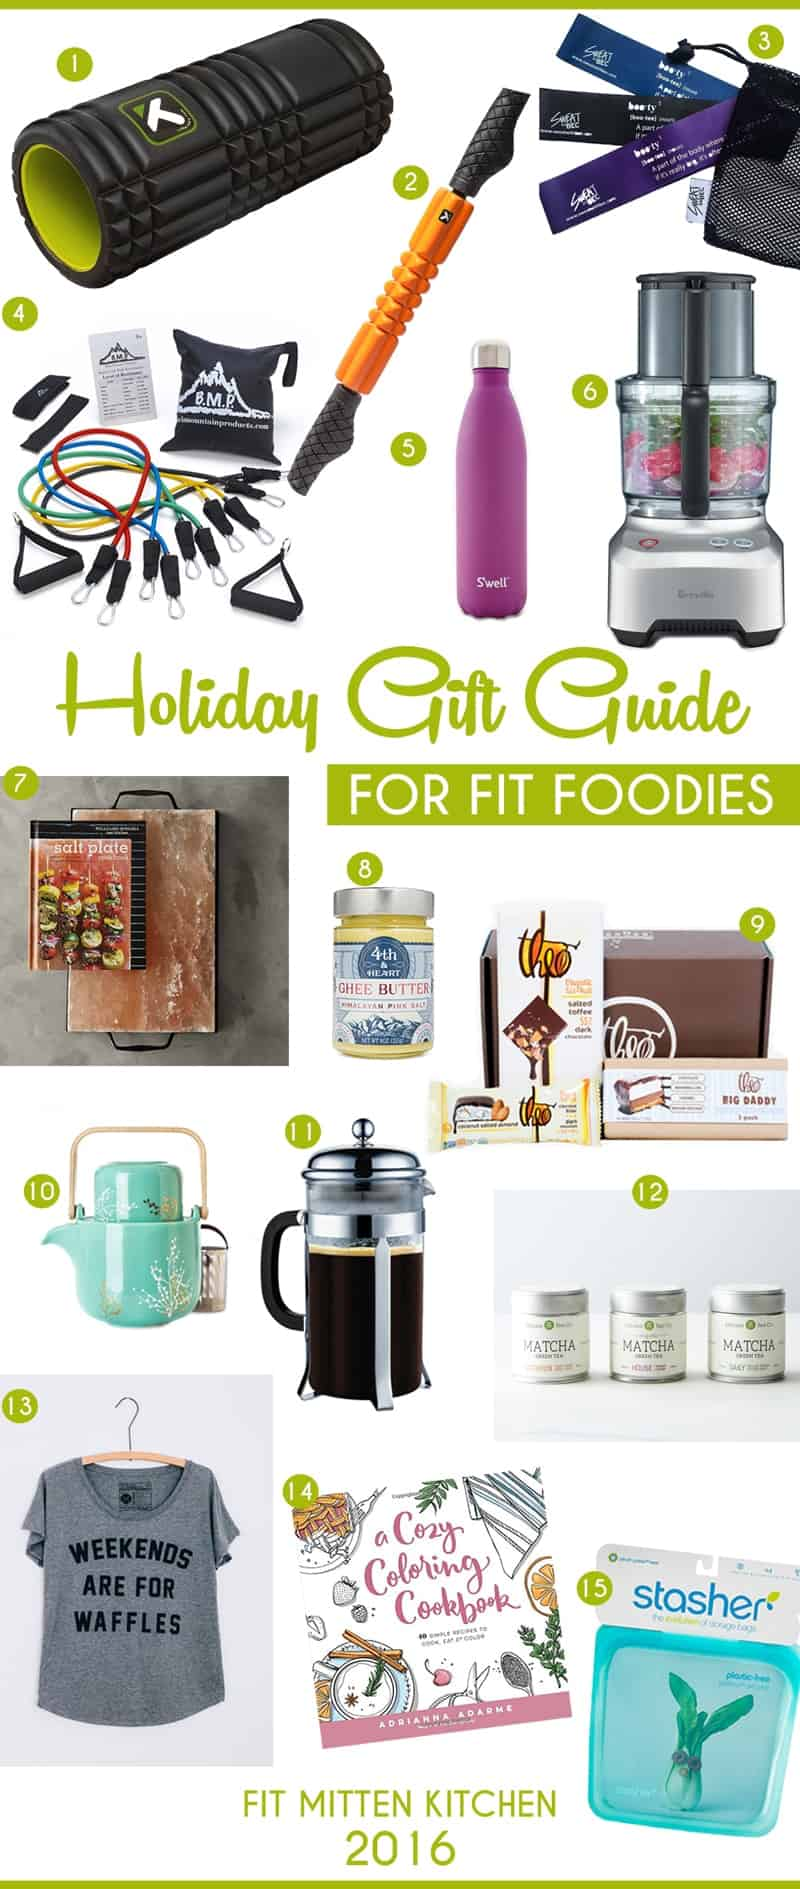 The Holiday Gift Guide for Fit Foodies pinteresst image foam roller water bottle french press stasher bag fit mitten kitchen